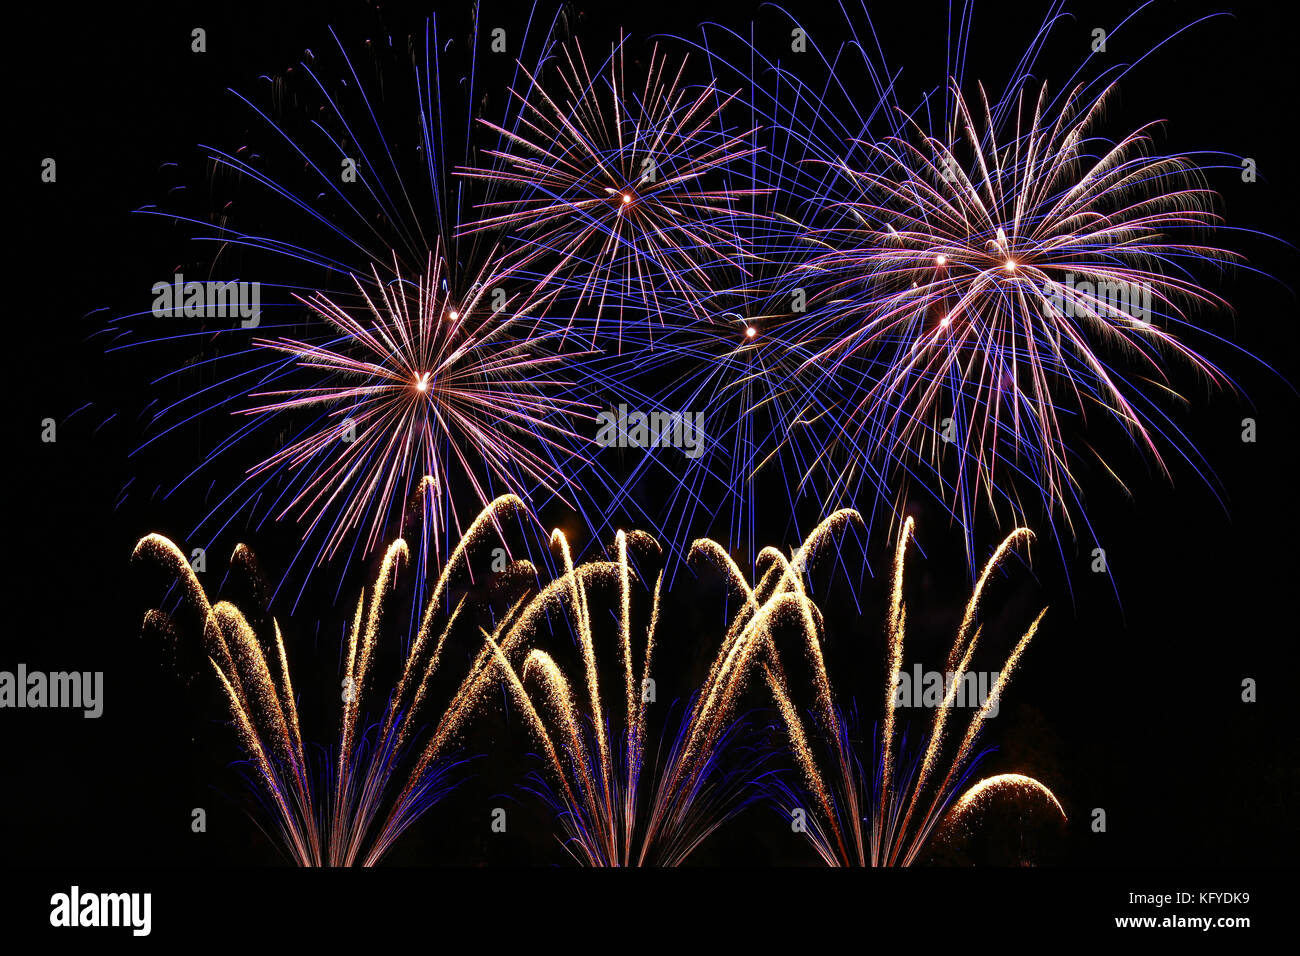 Bonfire Night (Guy Fawkes Night) - fireworks display on 5th November in Great Britain Stock Photo